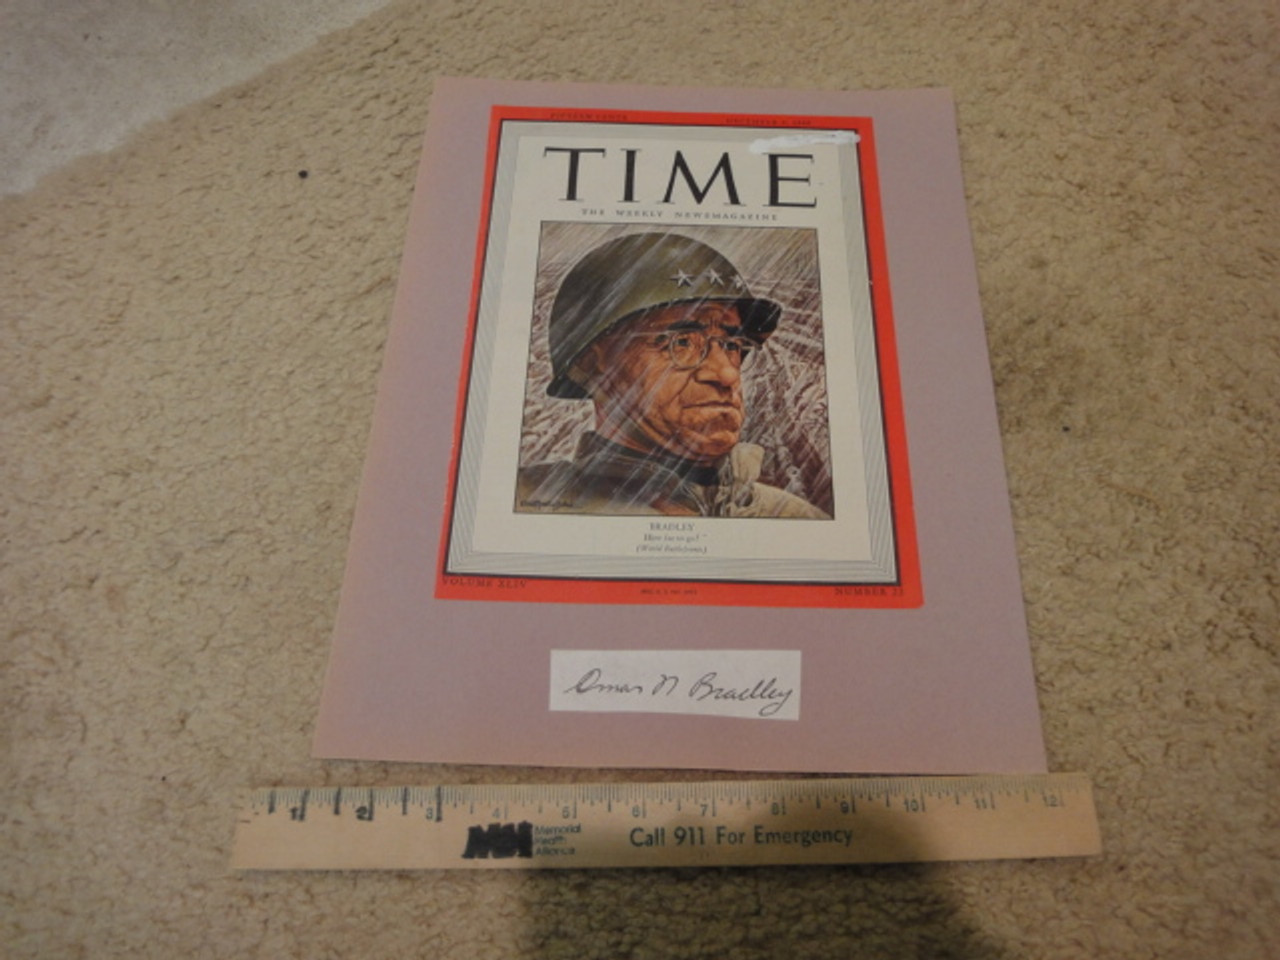 Bradley, Omar General Time Magazine Cover 1944 Signed Autograph Color WW II